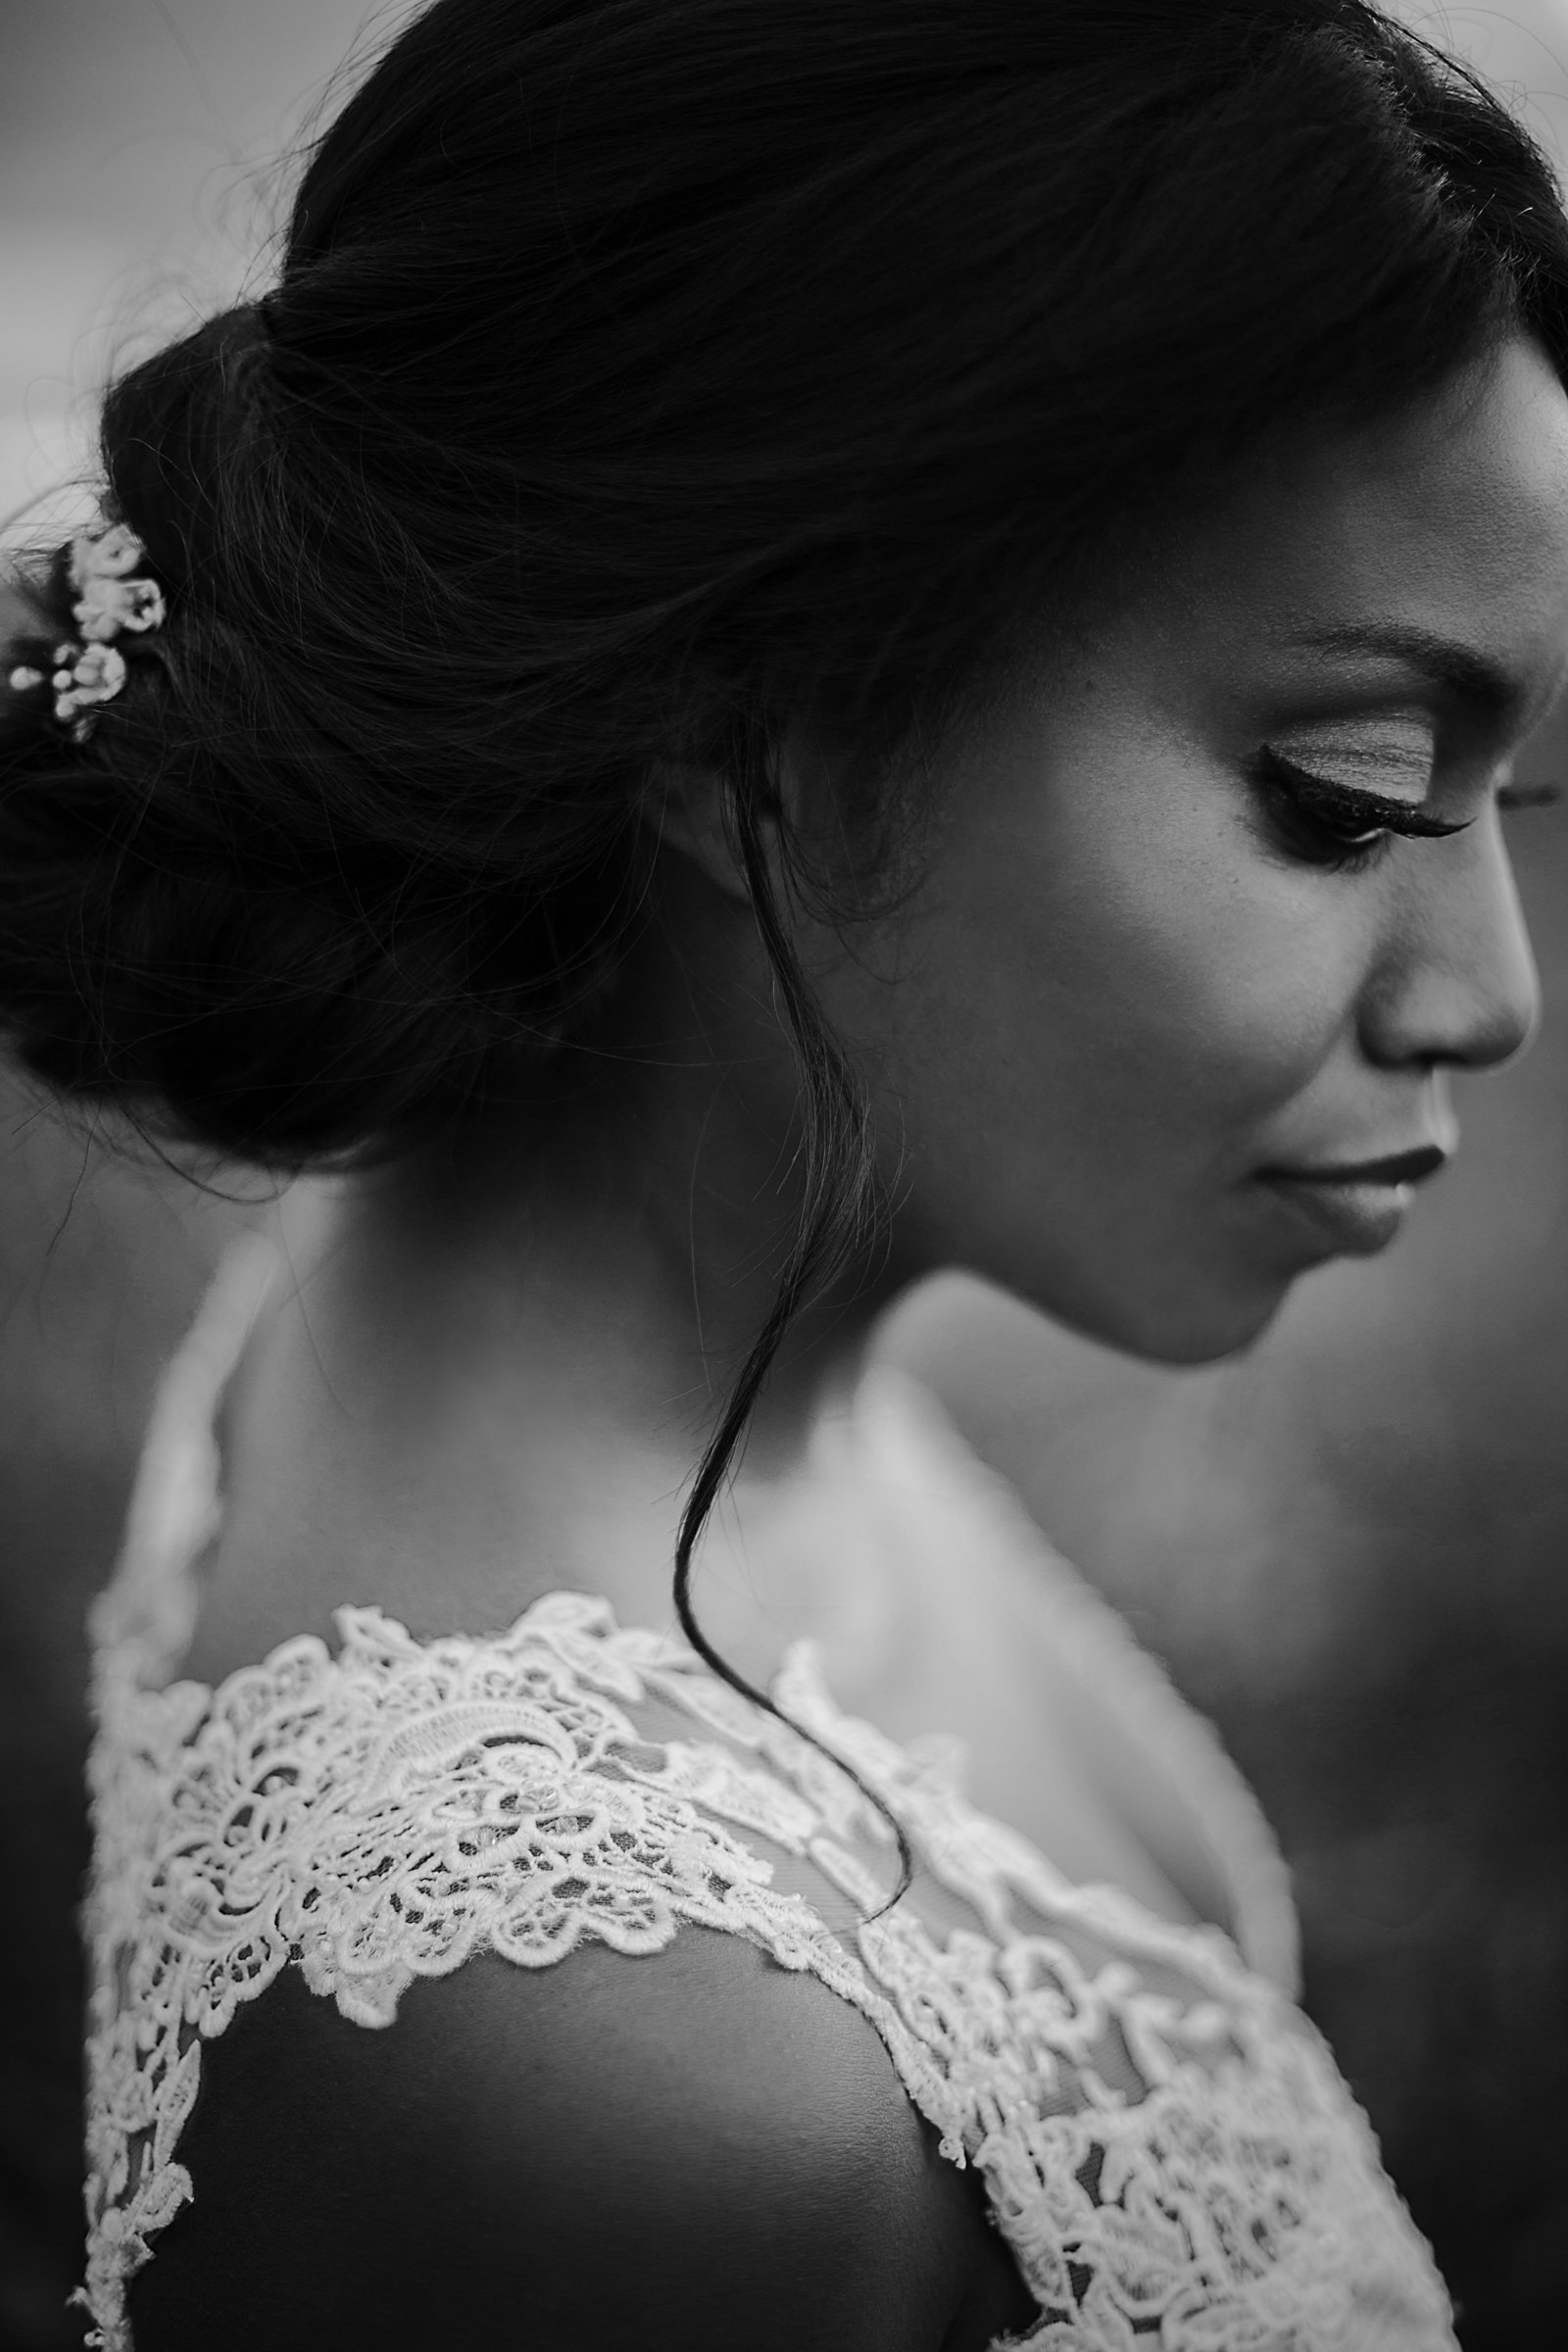 Charlotte wedding photographer Jamie Lucido creates a timeless black and white portrait of a bride